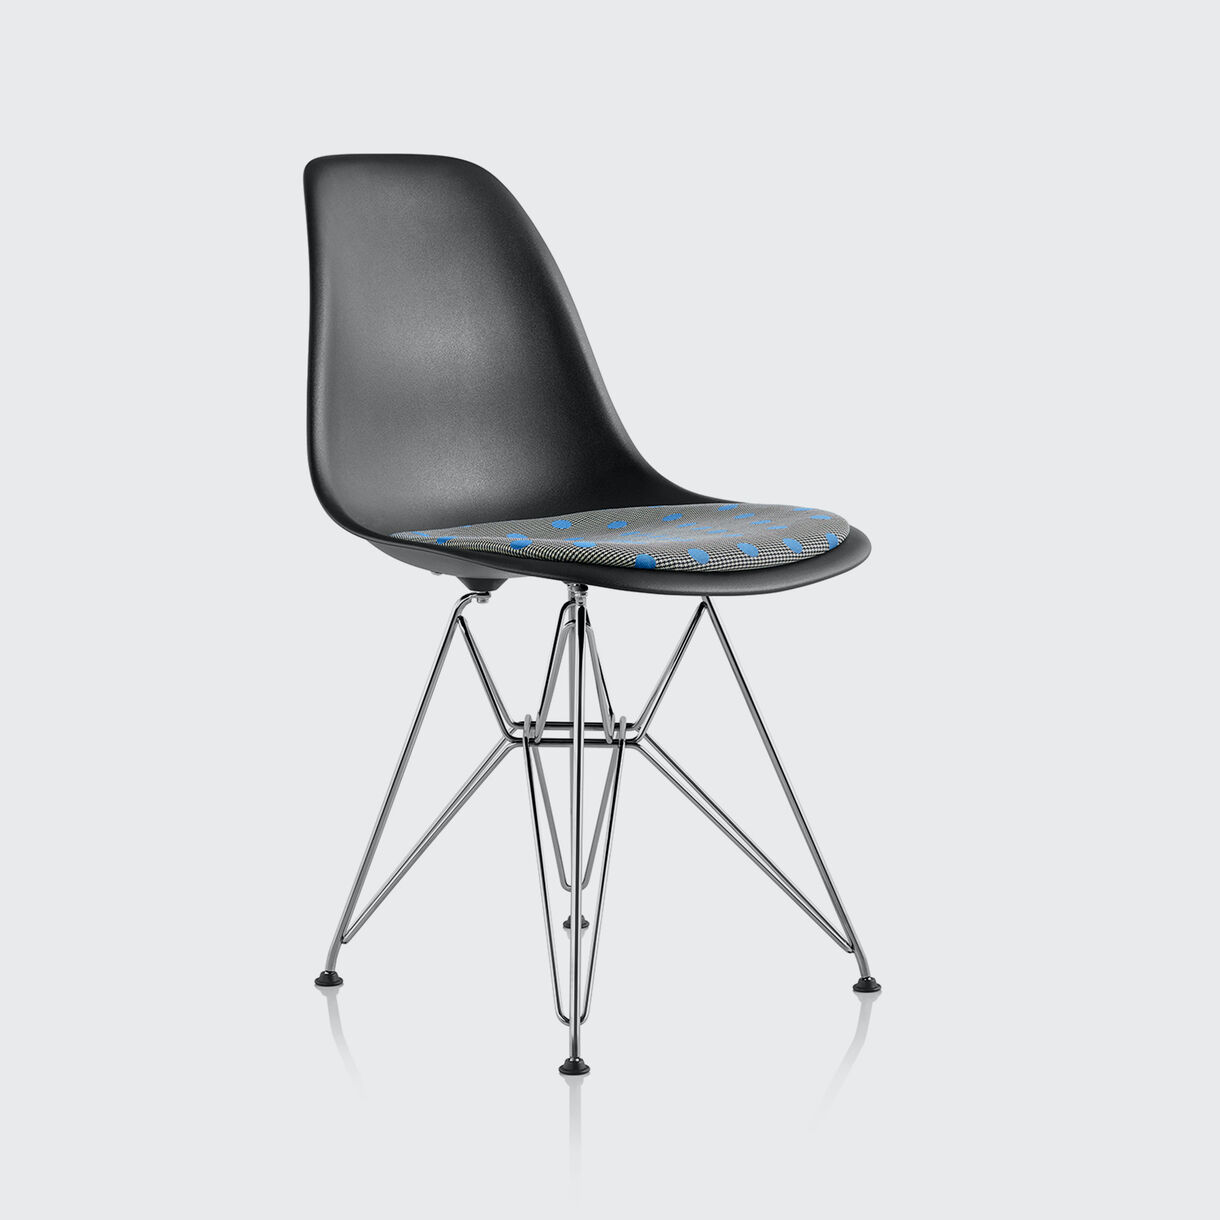 Eames Moulded Plastic Side Chair, Paul Smith x Maharam